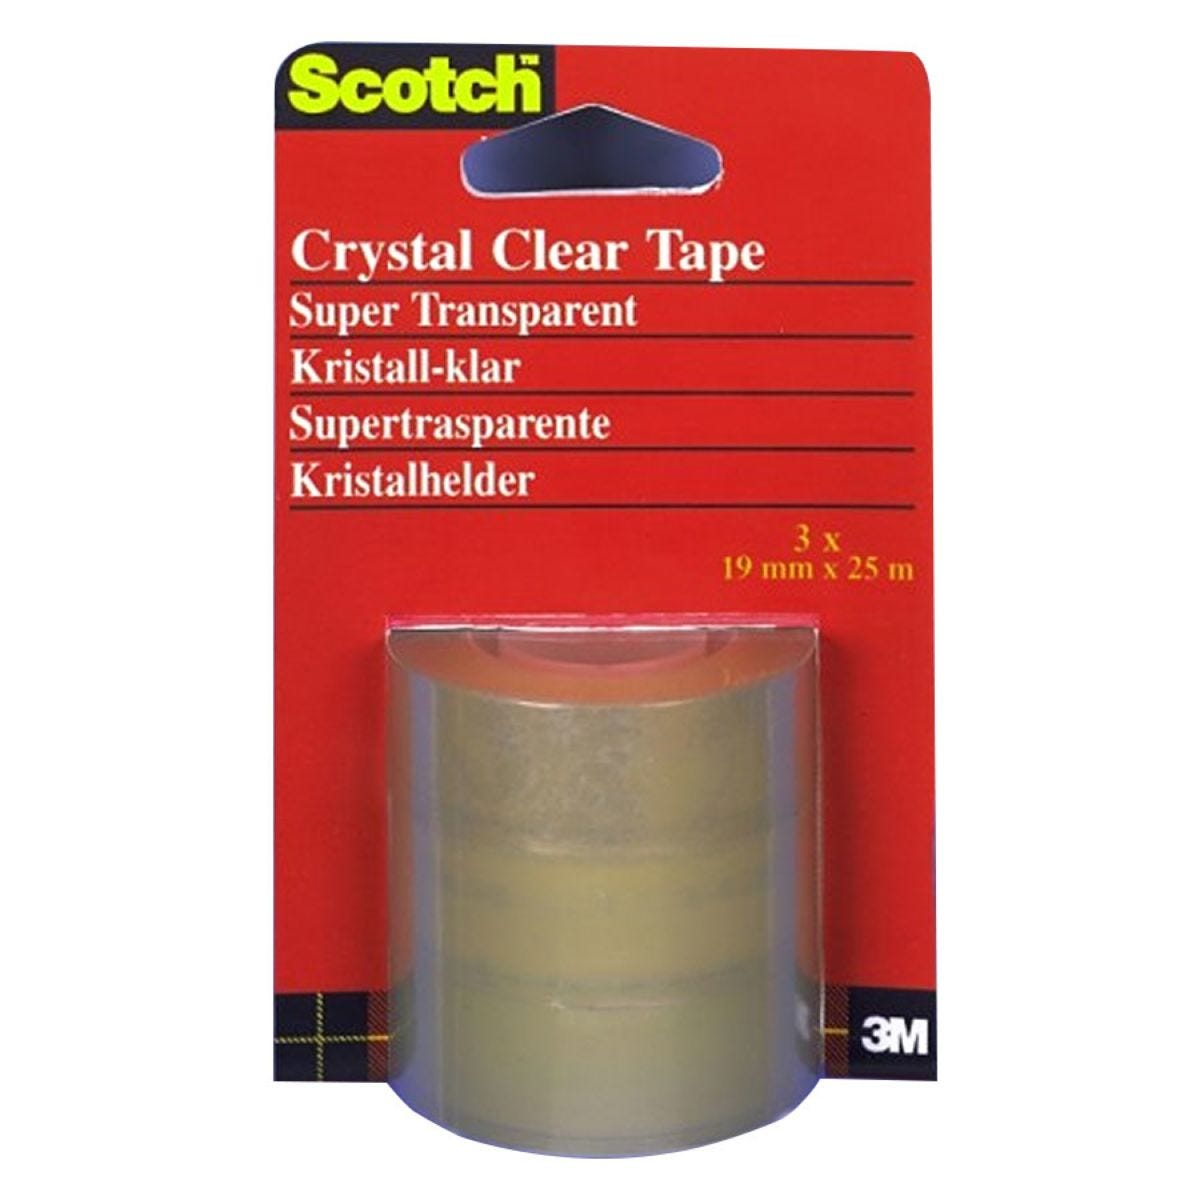 3M Scotch Crystal Clear Tape